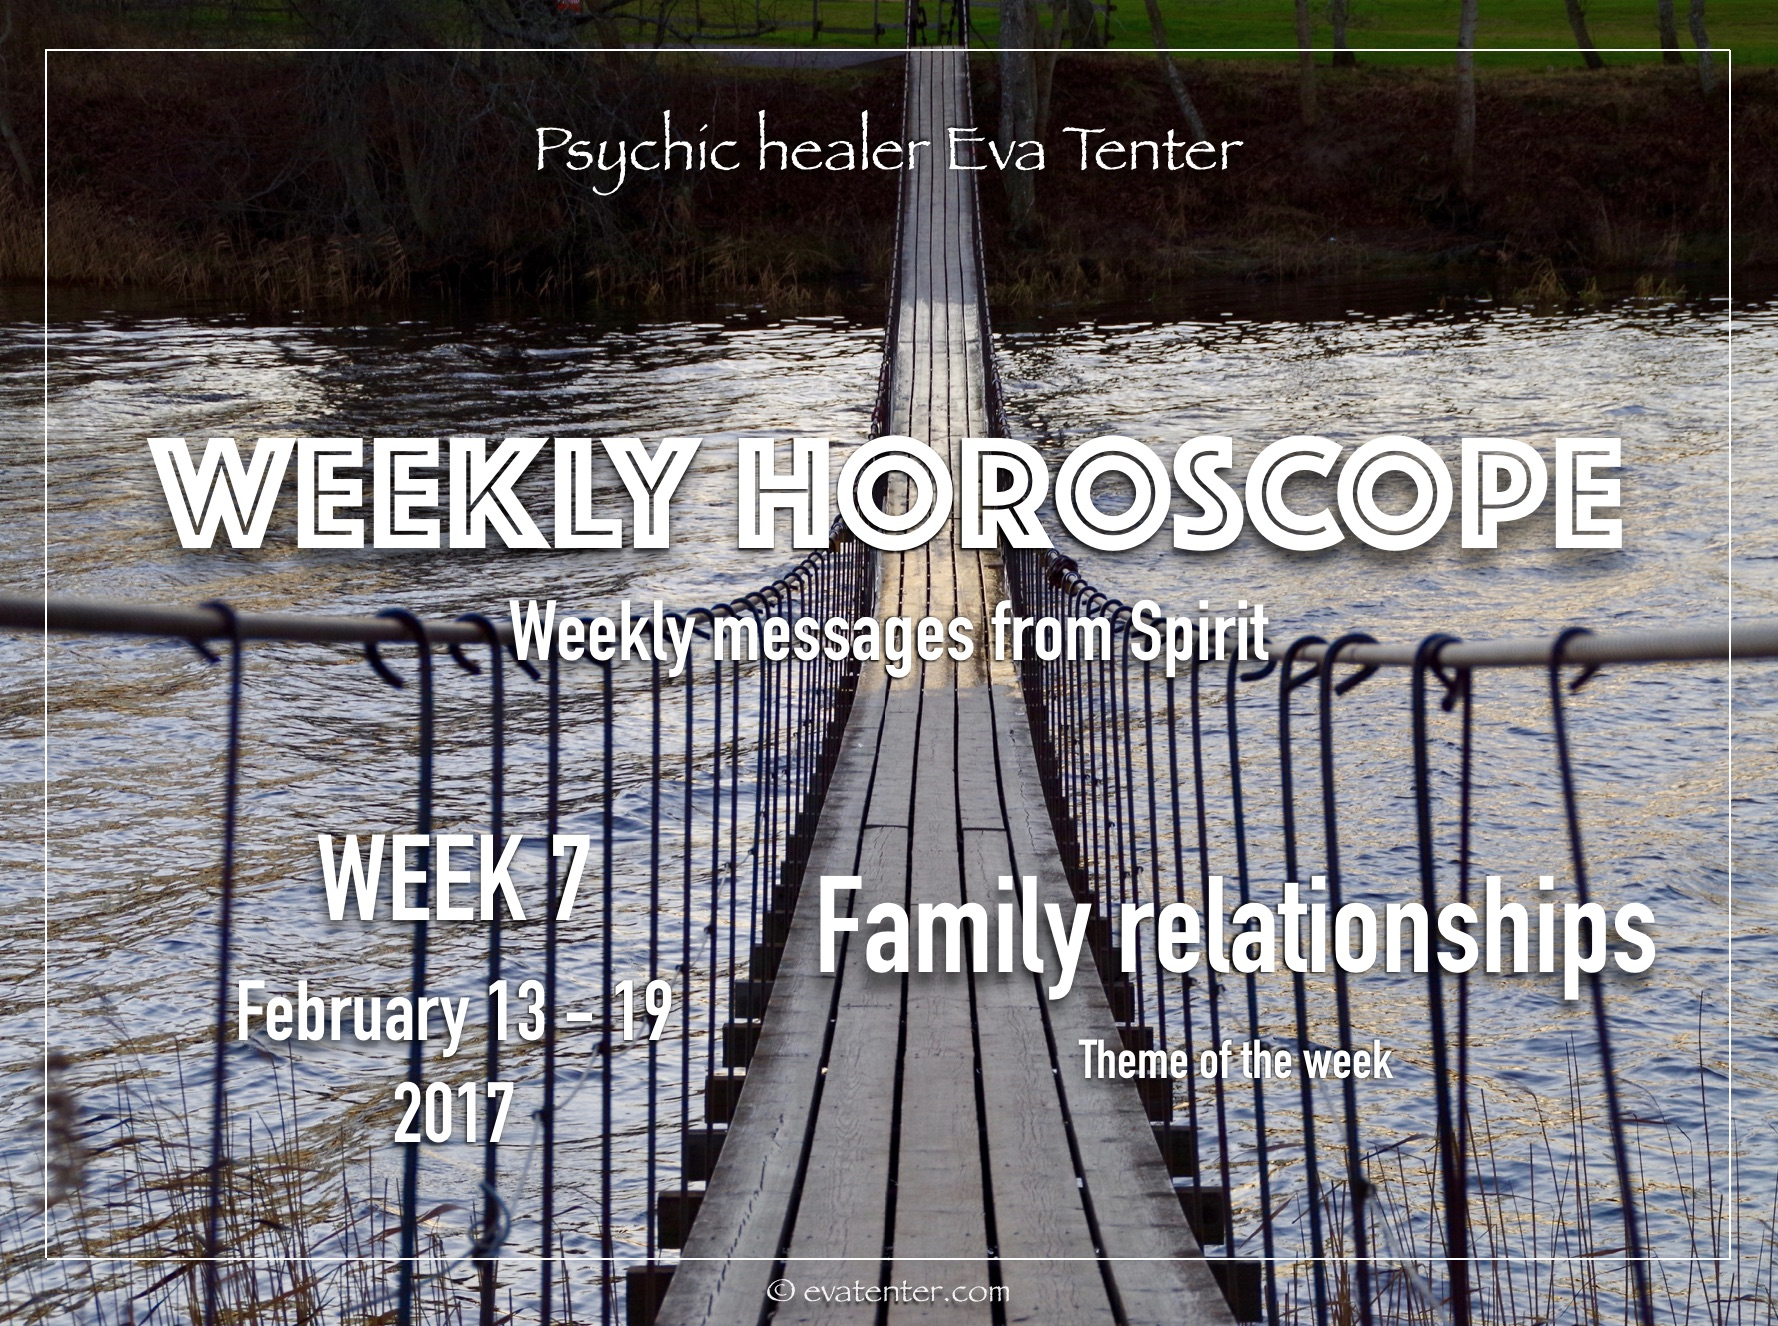 Weekly horoscope February 13-19, 2017 #horoscope #psychicreading